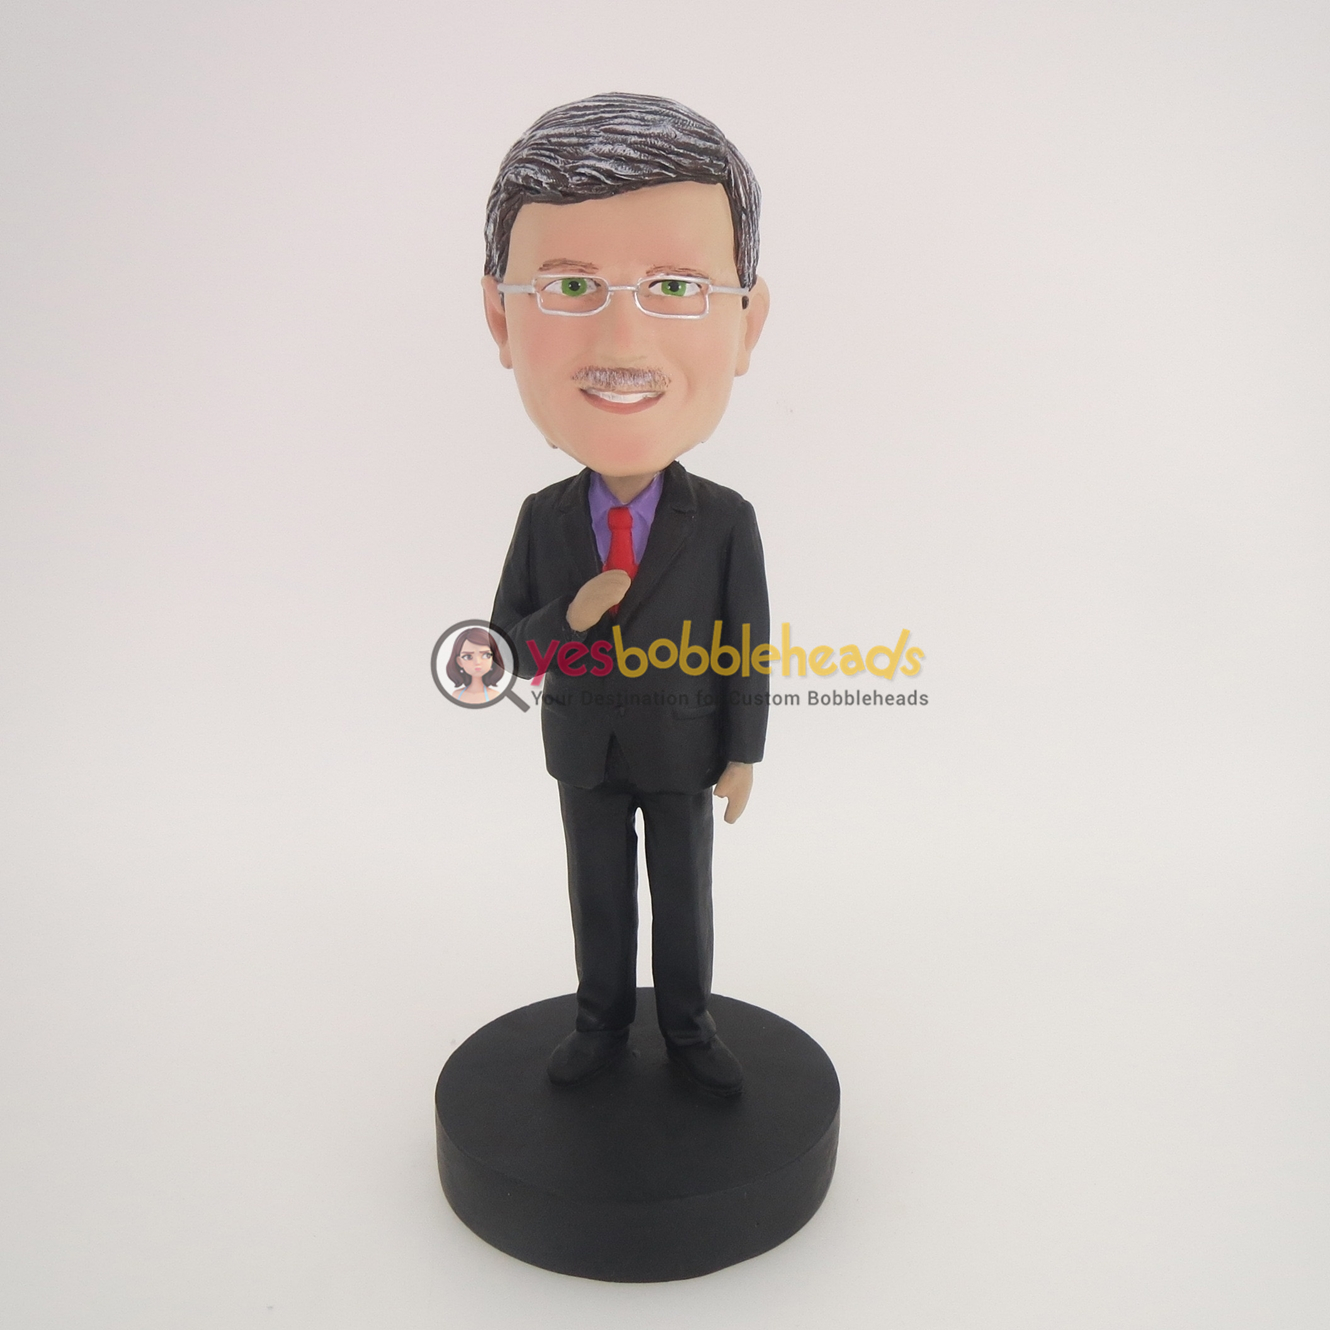 Picture of Custom Bobblehead Doll: Business Man Holding Tie